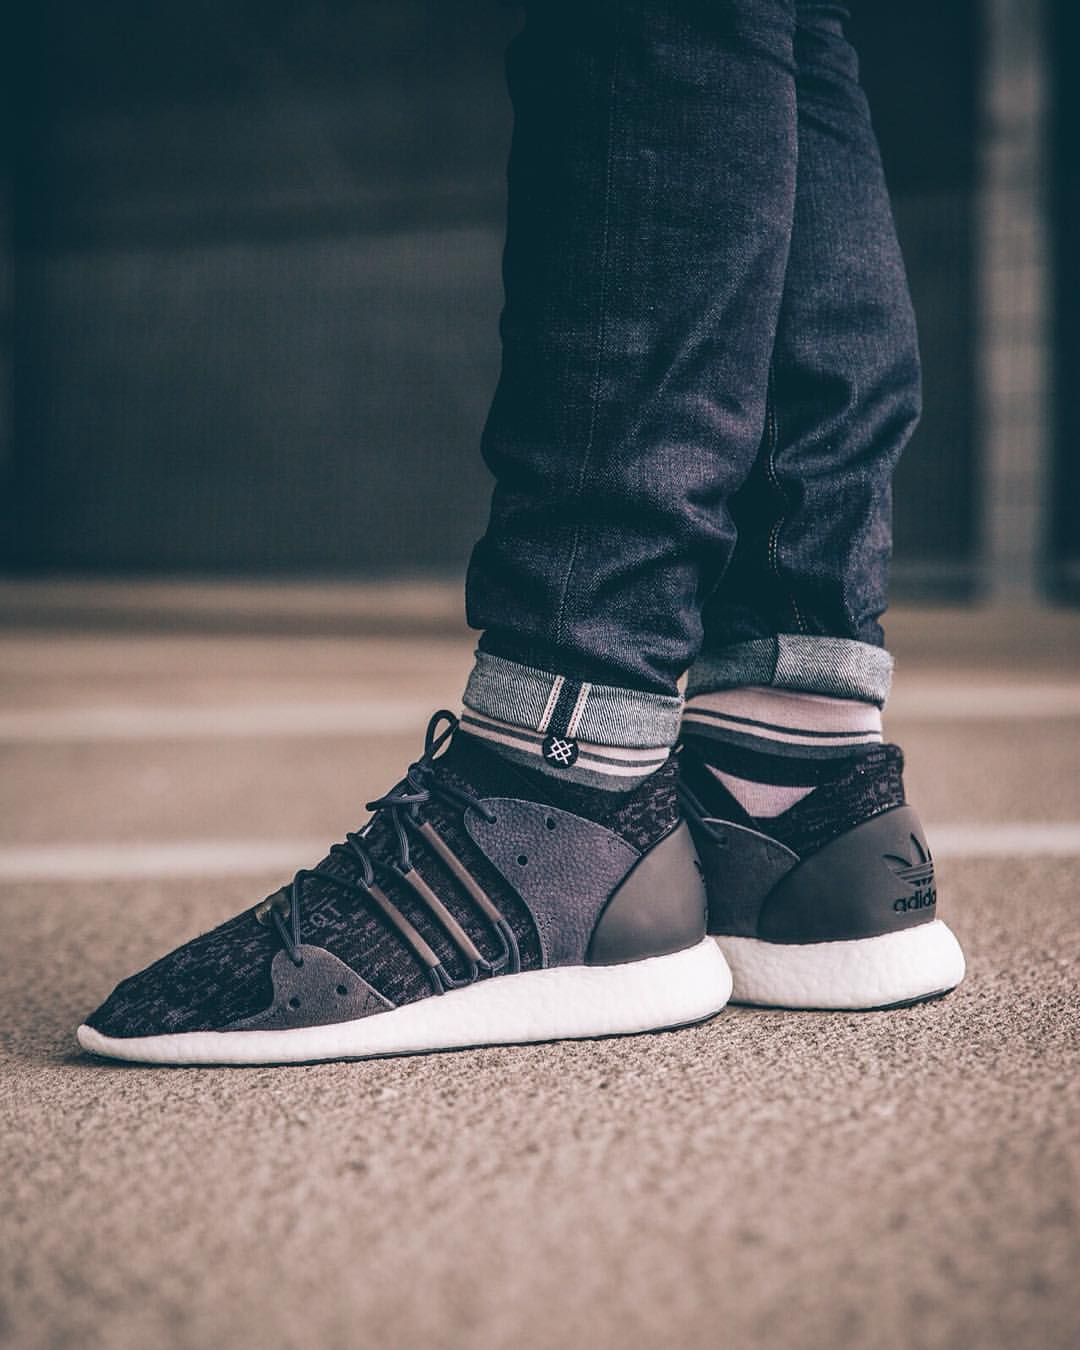 EQT SUPPORT ADV Lifestyle Athletic & Sneakers Shoes Cheap Adidas US